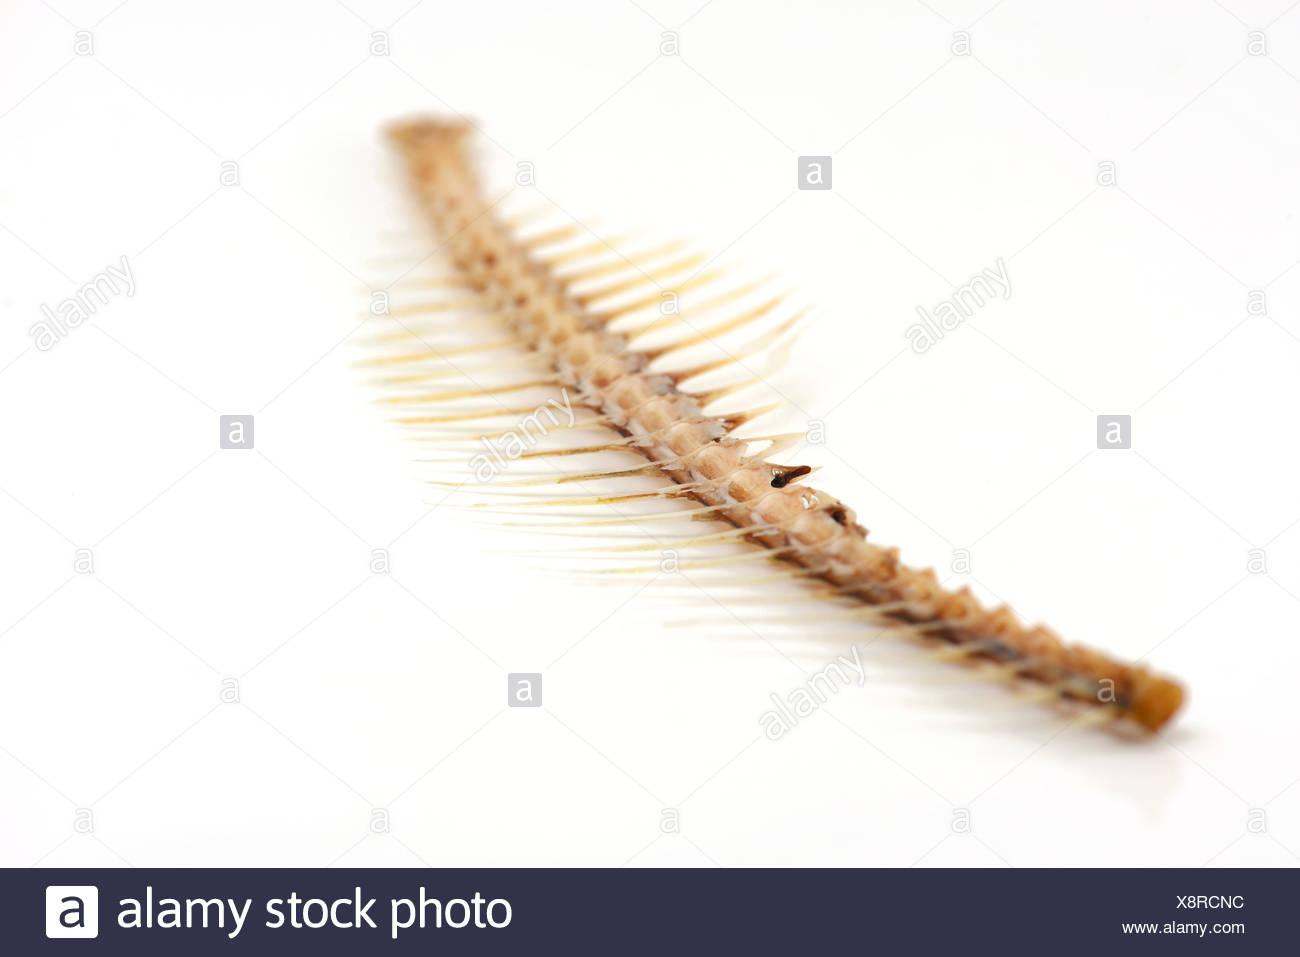 Fishbone Stock Photo